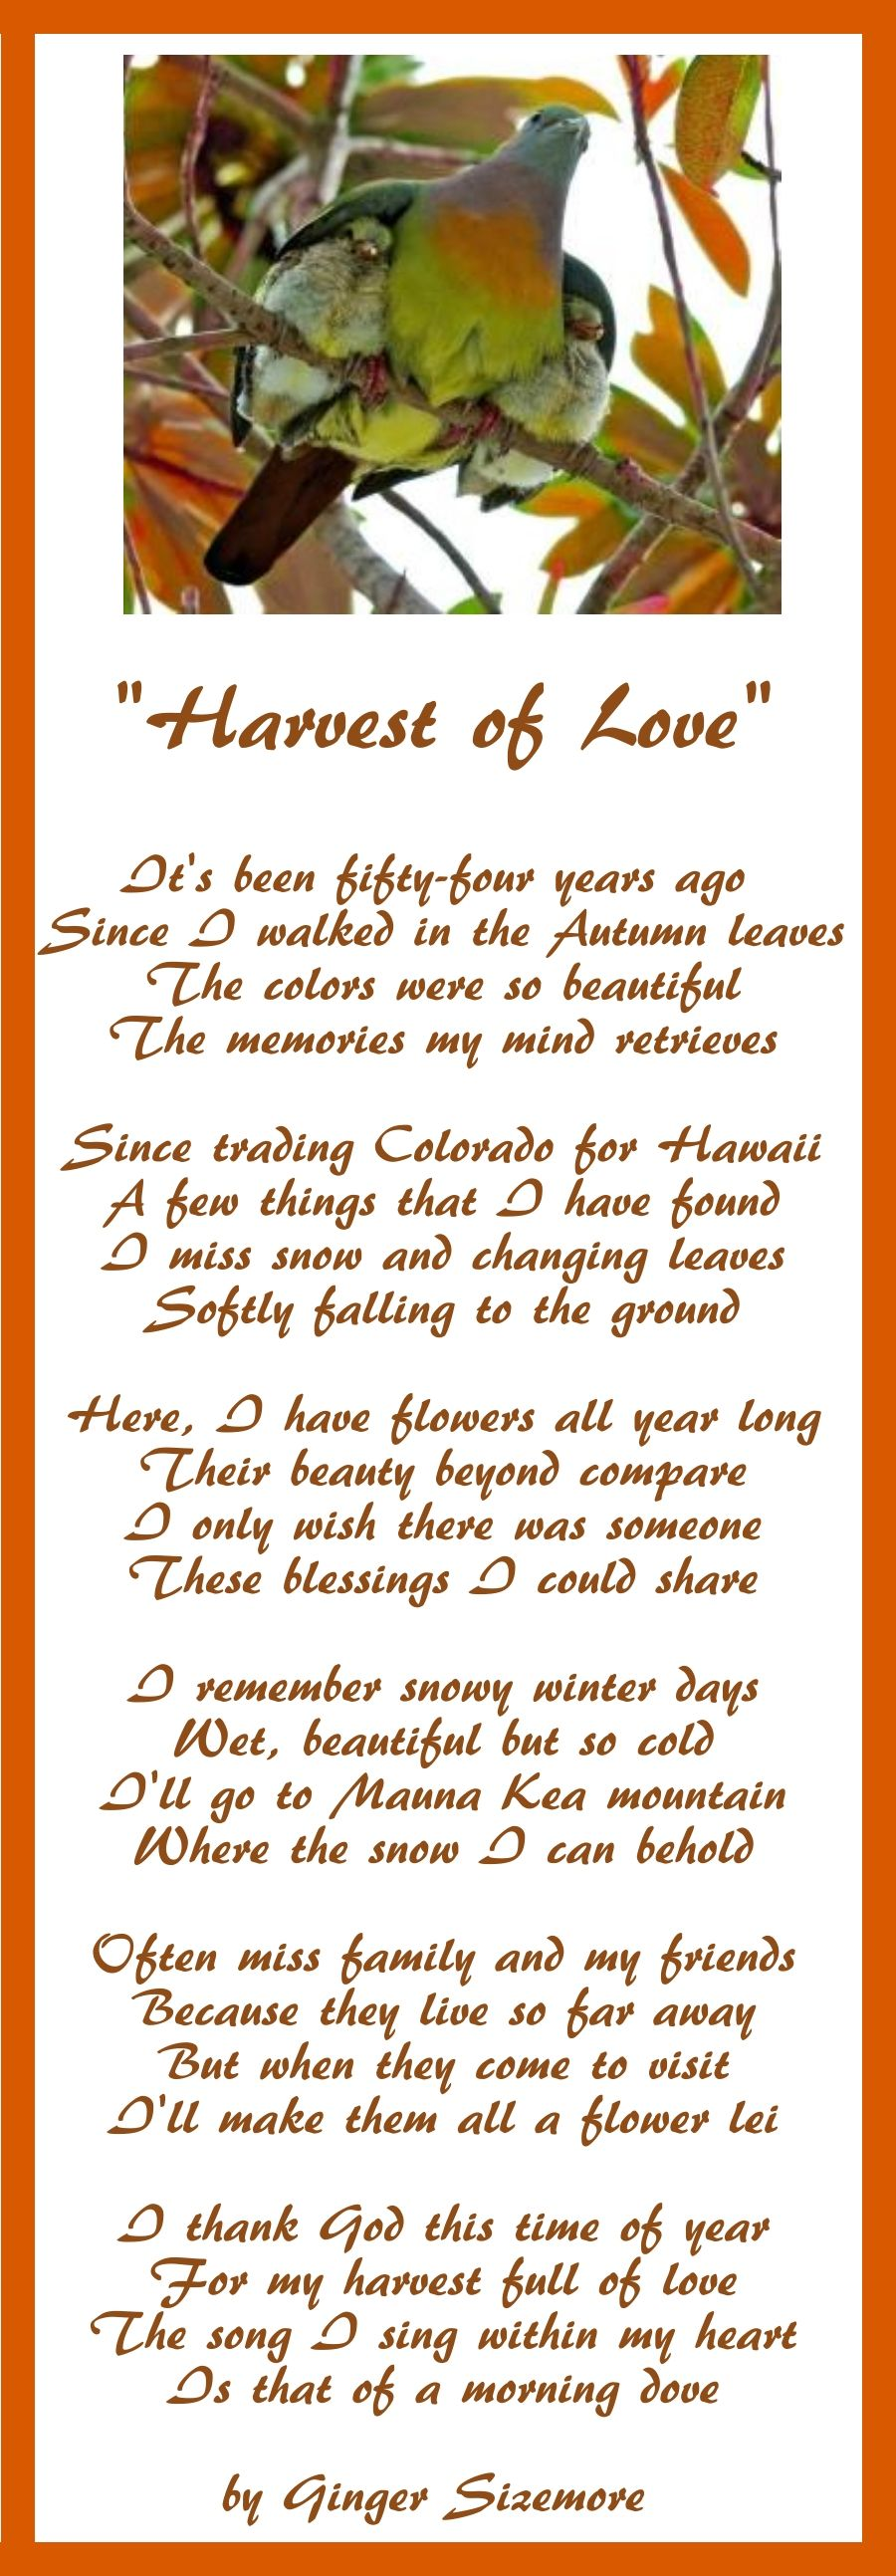 Poem about missing loved ones far away by Ginger Sizemore